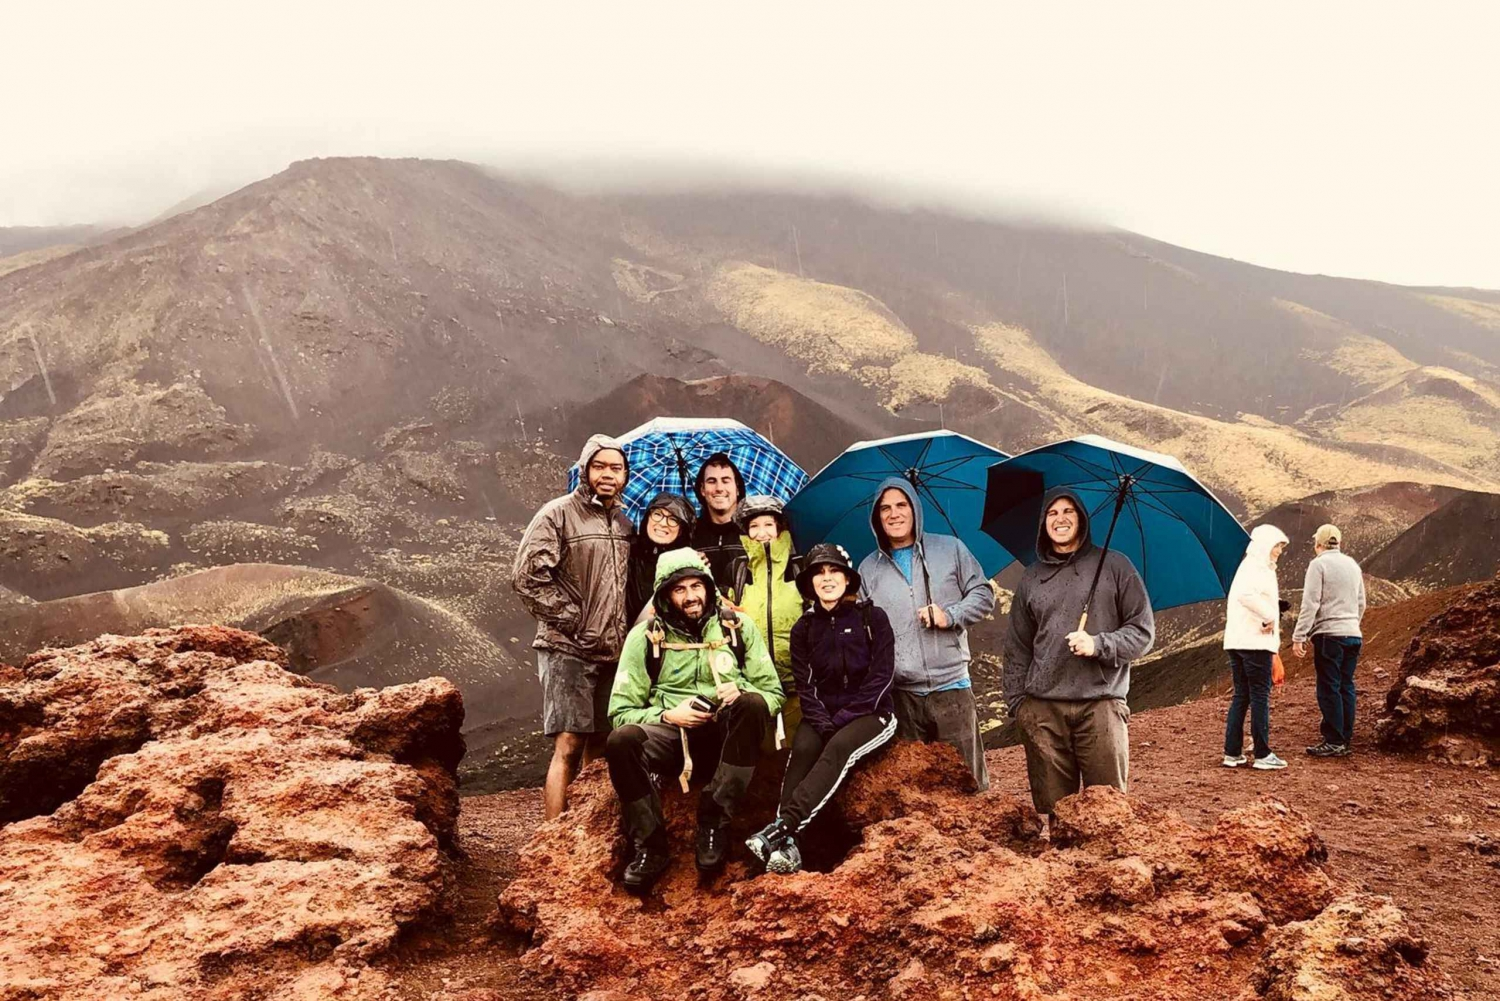 Mount Etna: Day Tour and Hike